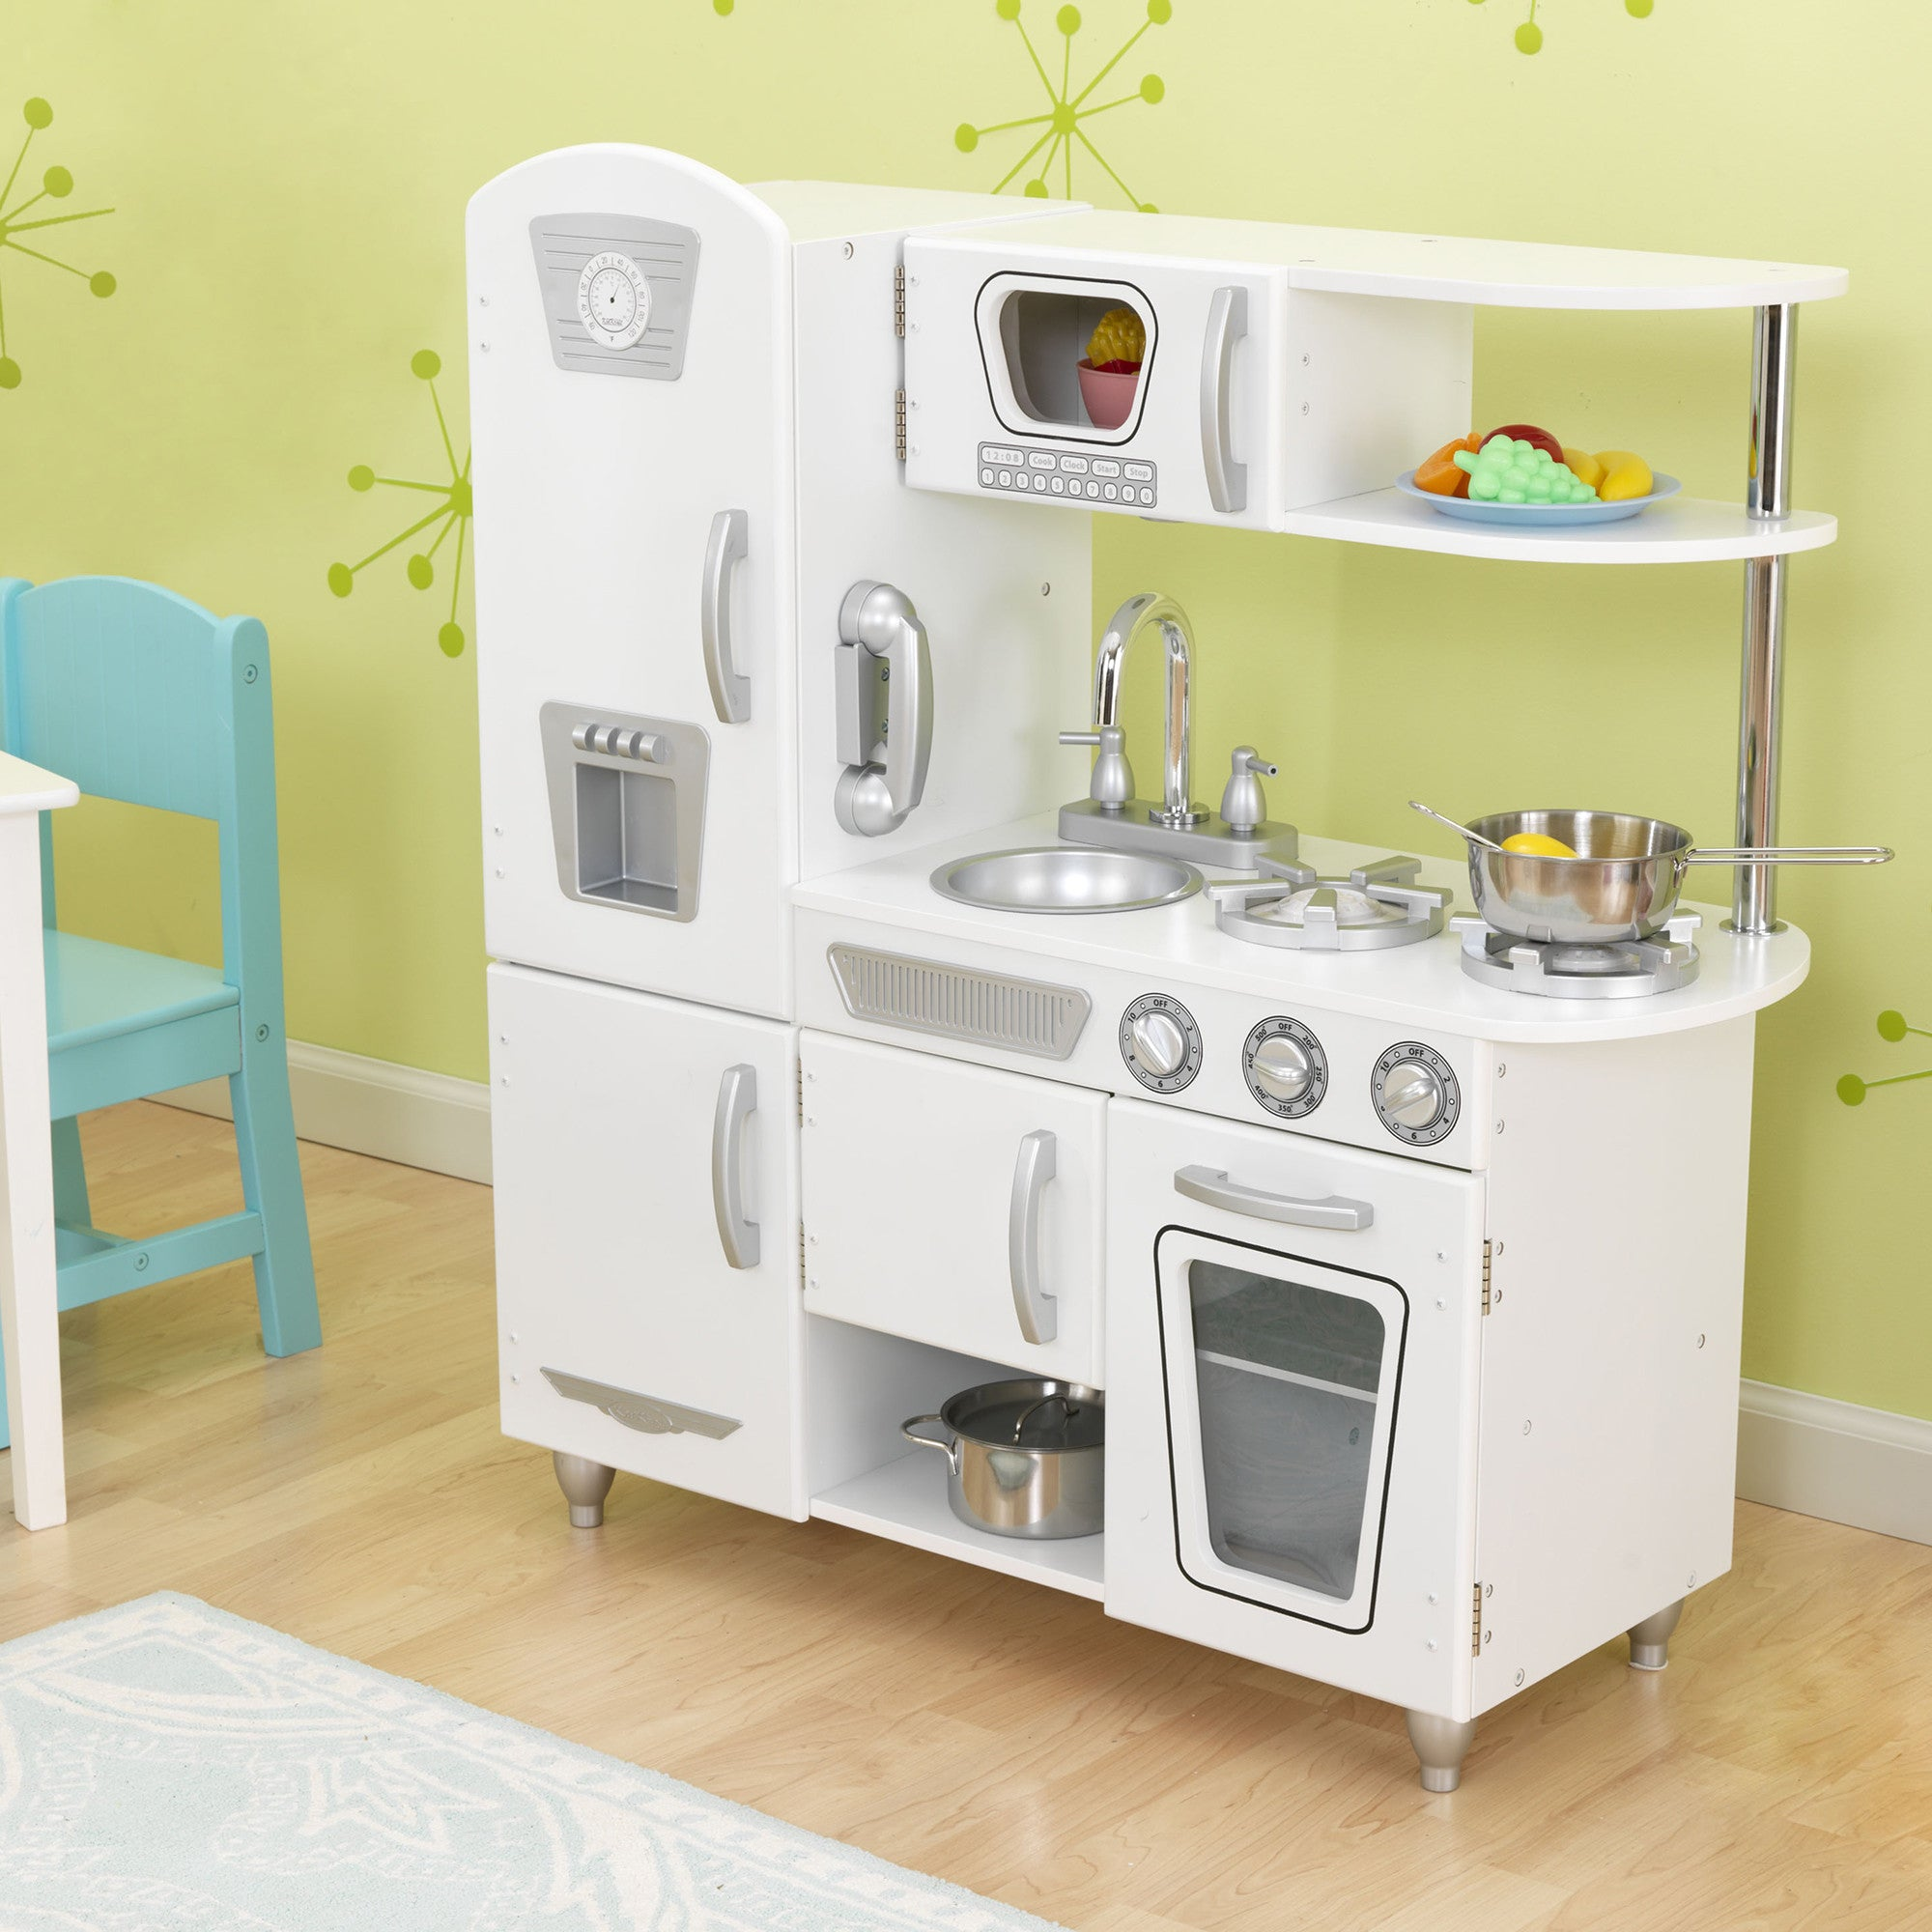 Kidkraft Retro Kitchen for Kids - Little Earth Nest